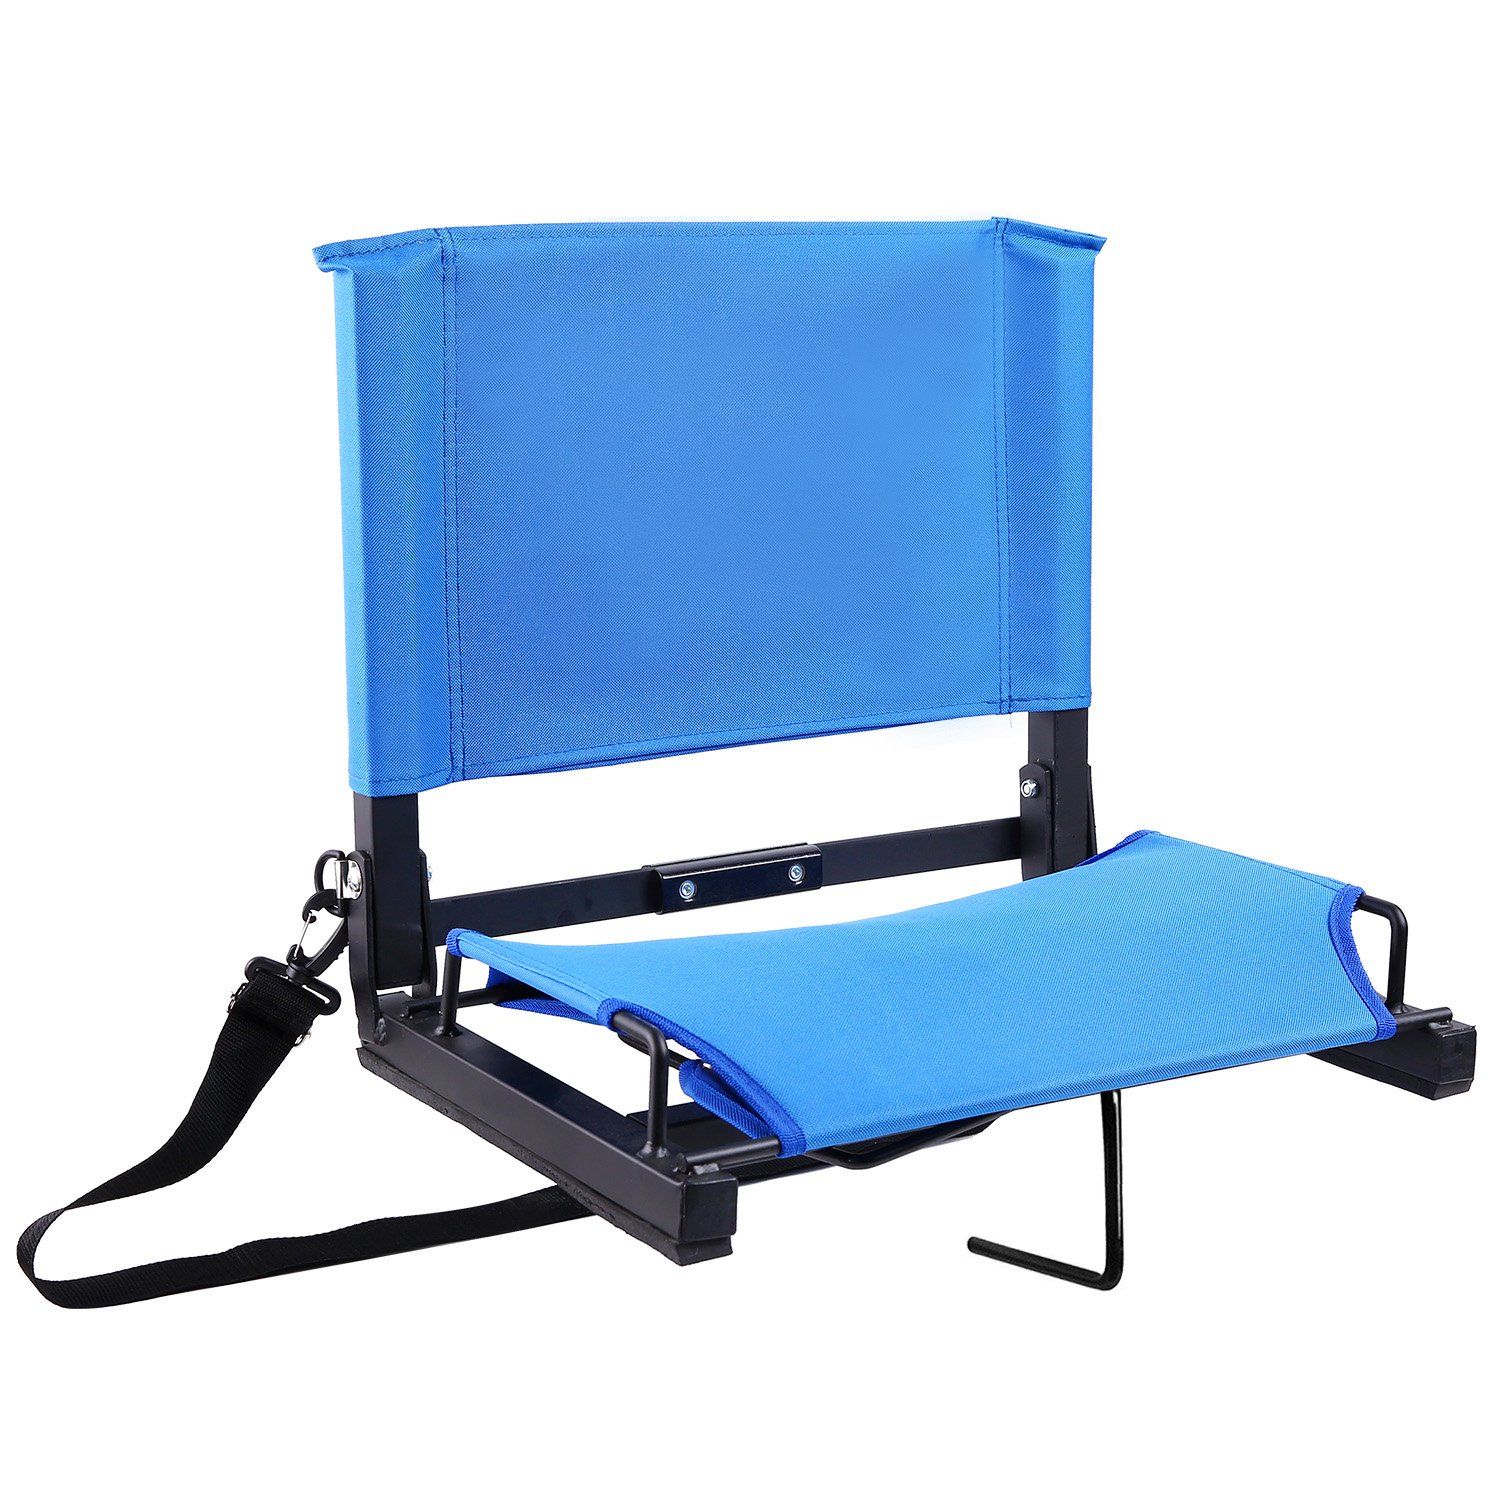 Ohuhu Stadium Chairs/Stadium Seats Bleacher Seats with Bungee Cord Cushion and Comfortable Backrest, Blue by Ohuhu